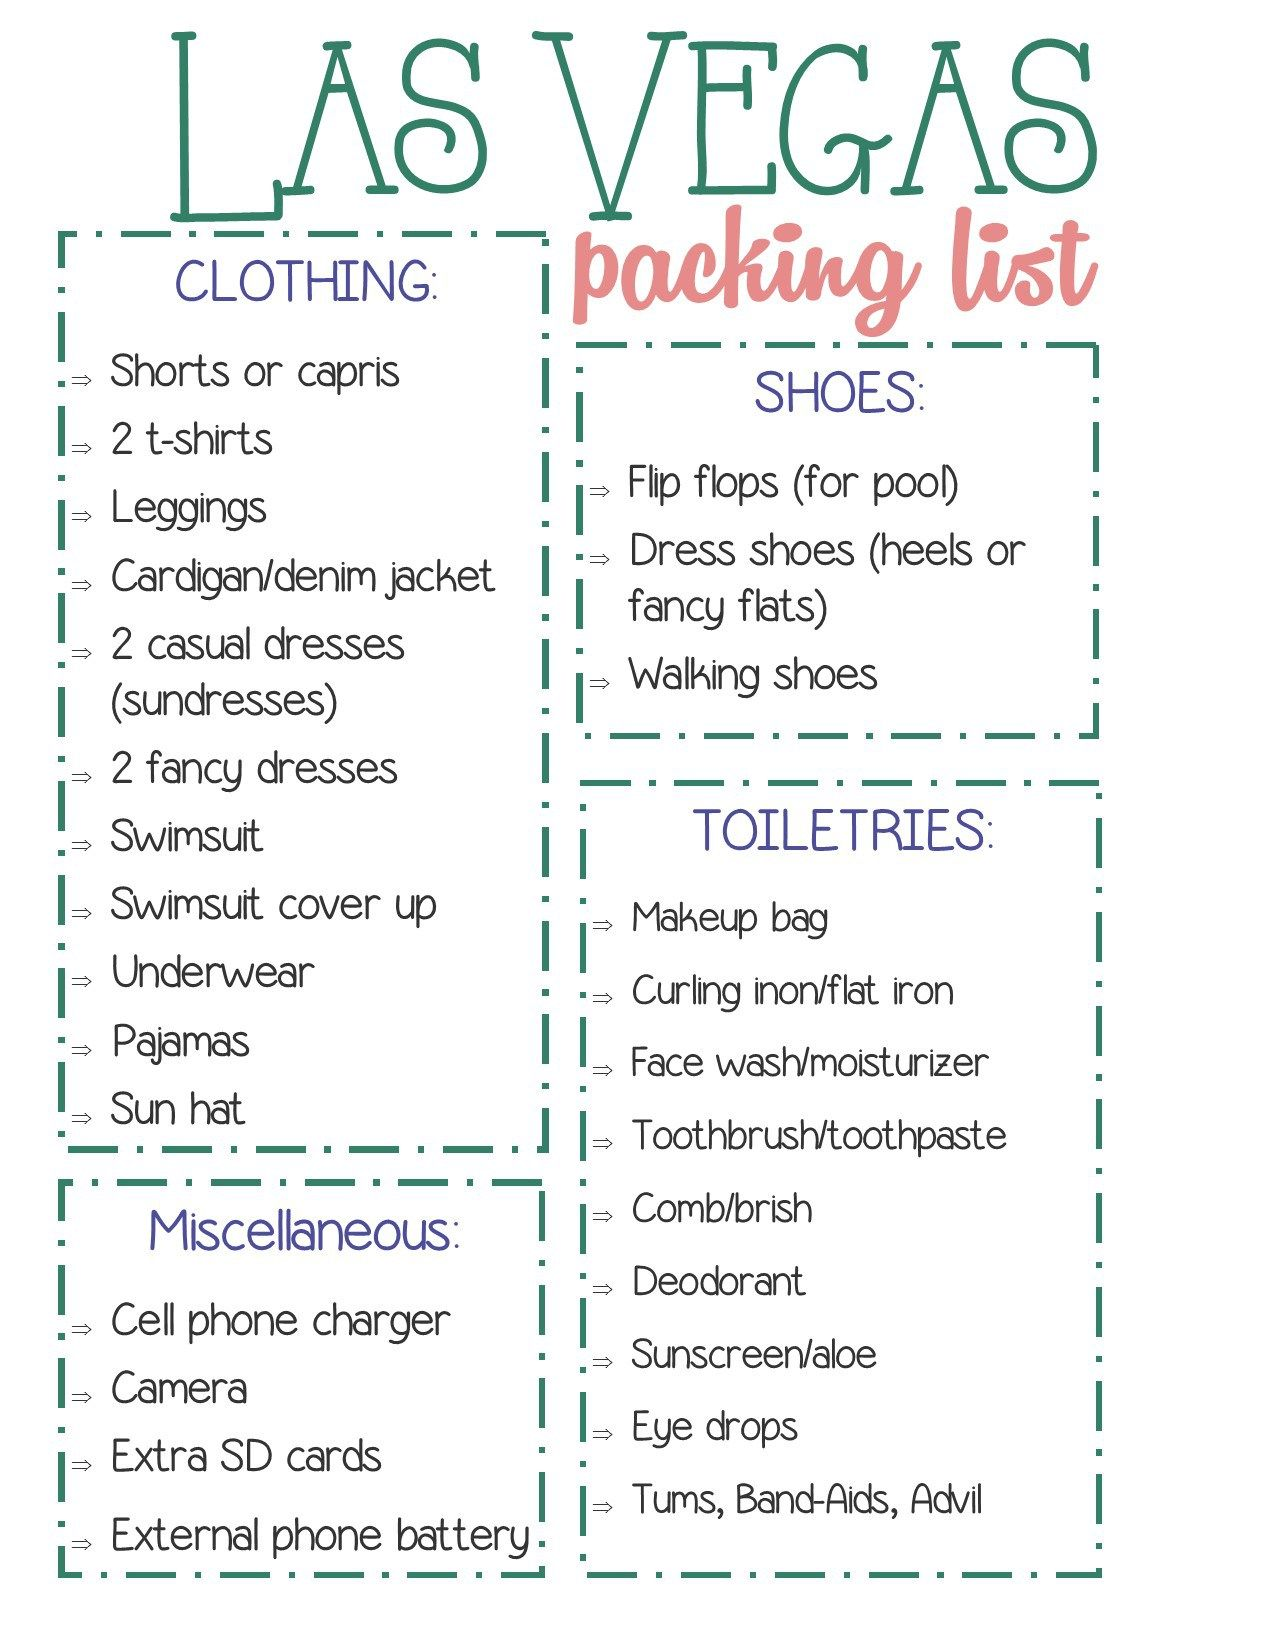 Las Vegas Packing List Resize 232 2c